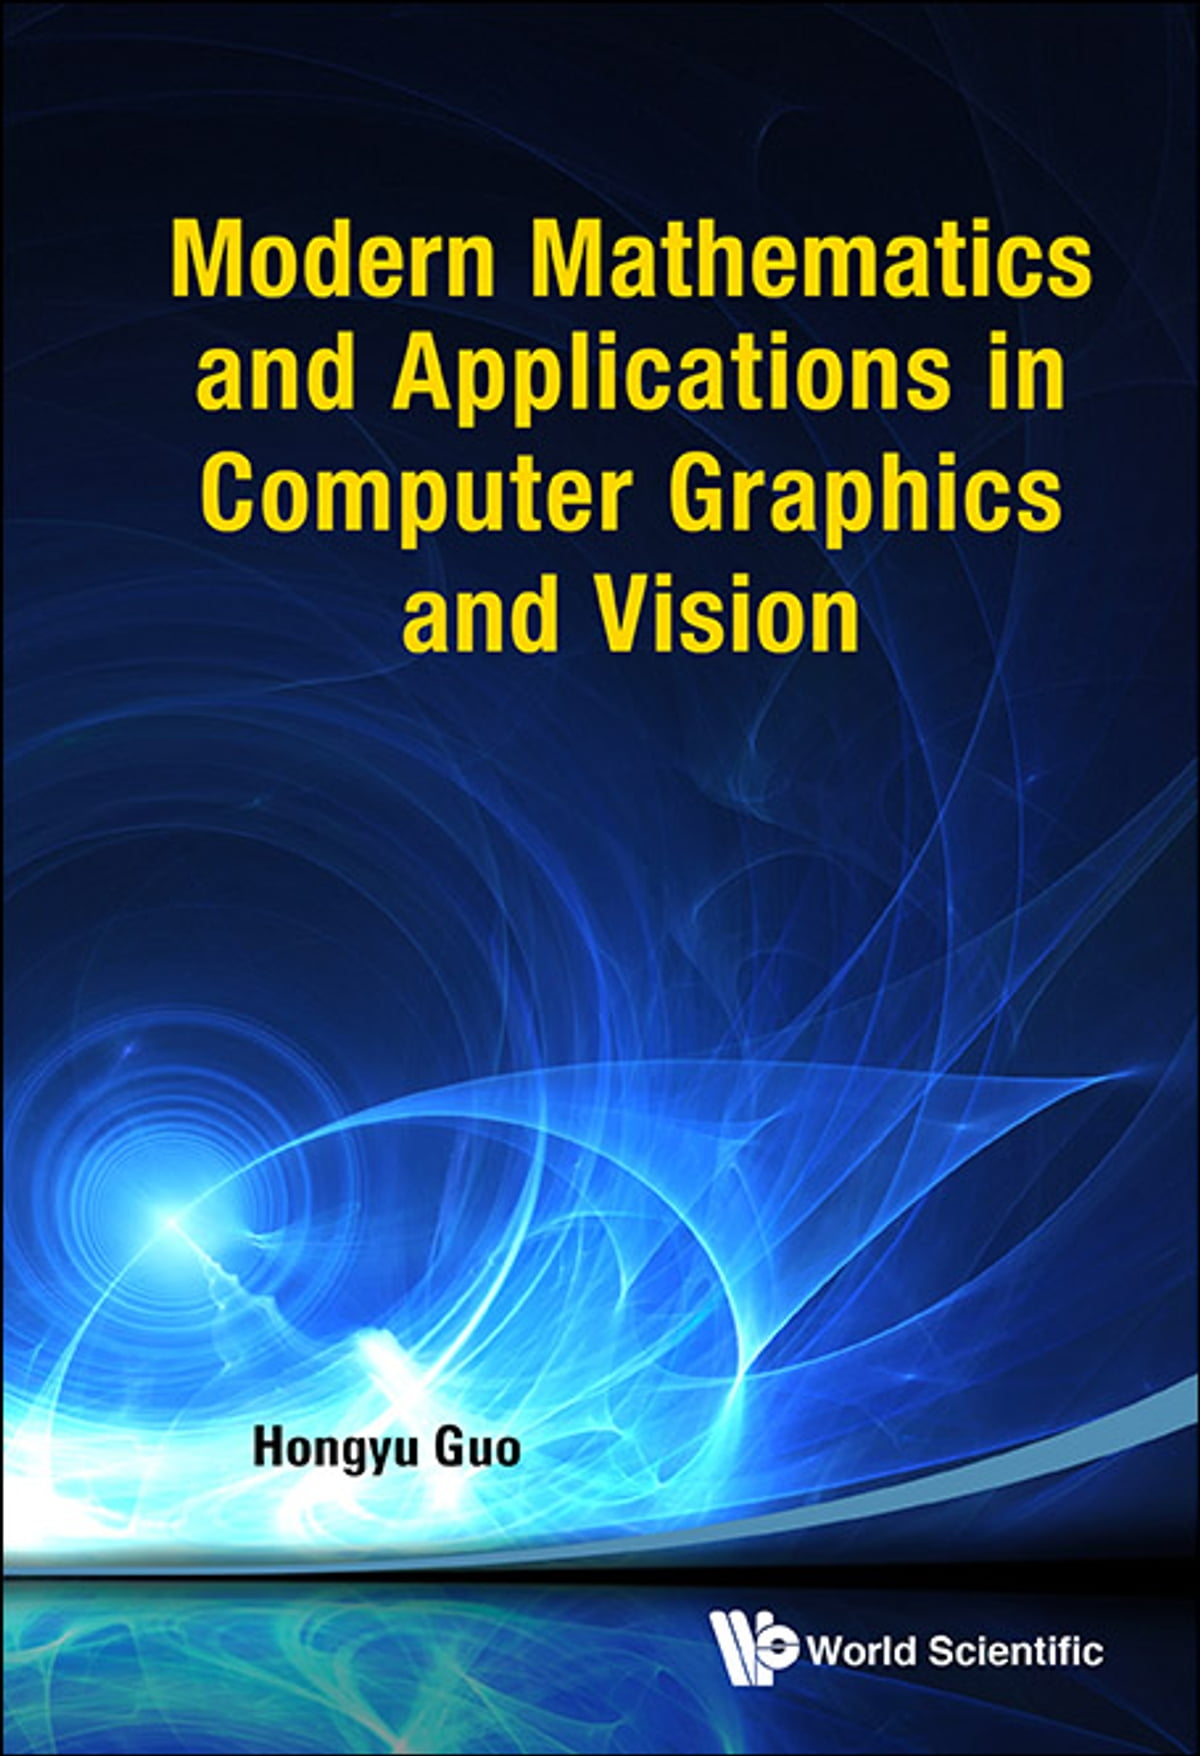 Modern Mathematics and Applications in Computer Graphics and Vision ebook  by Hongyu Guo - Rakuten Kobo